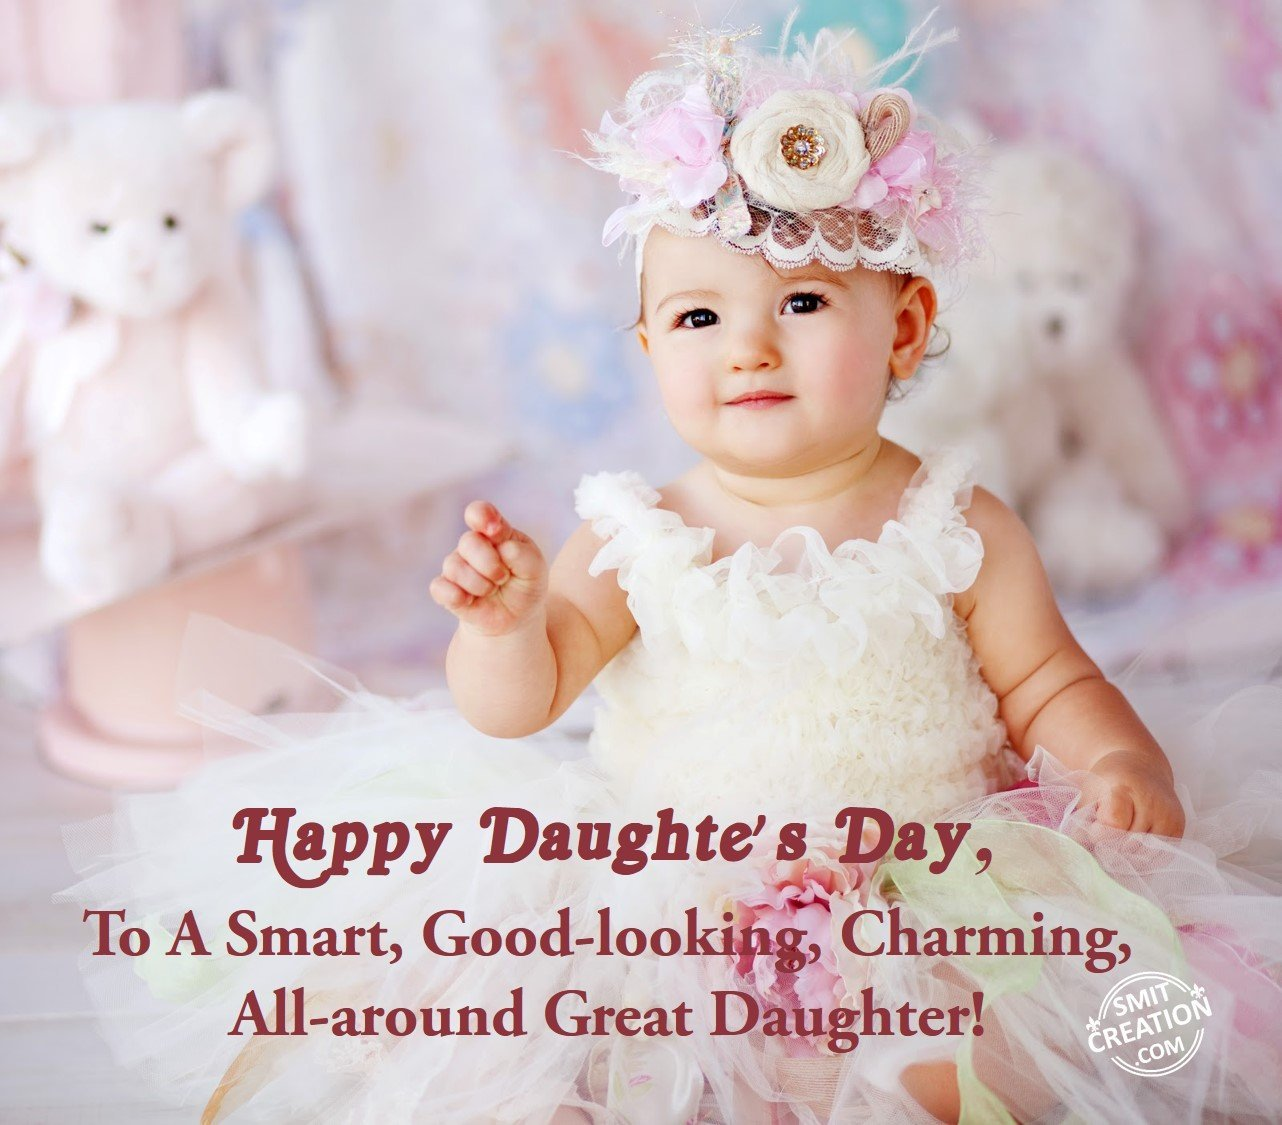 daughters' day - photo #20